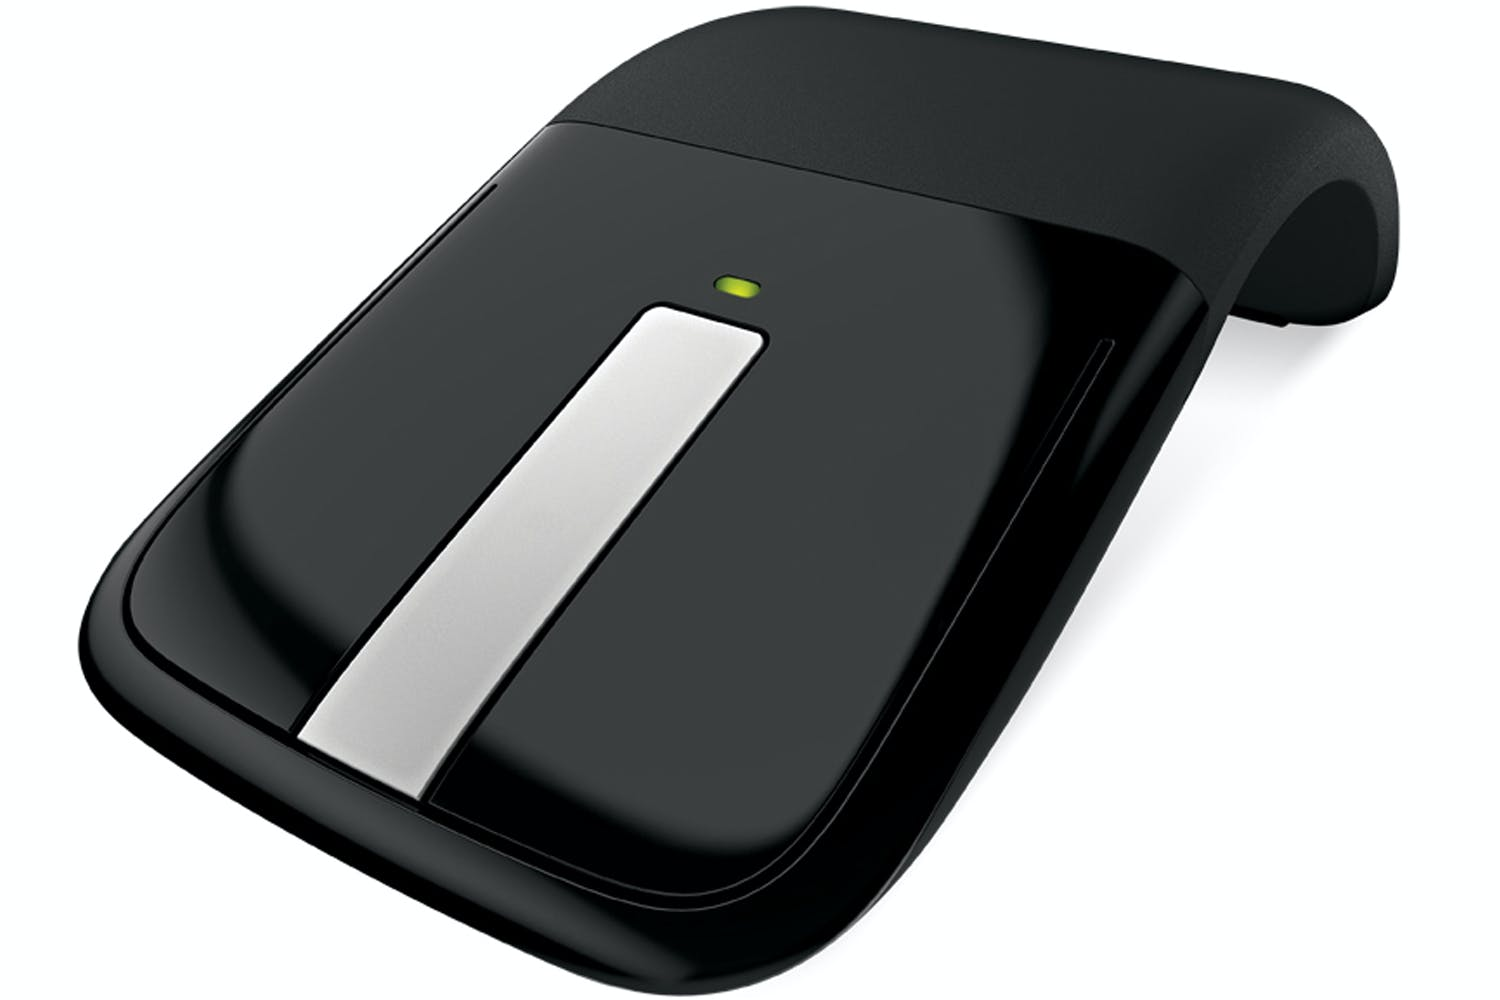 microsoft arc touch mouse rvf 00050 ireland. Black Bedroom Furniture Sets. Home Design Ideas